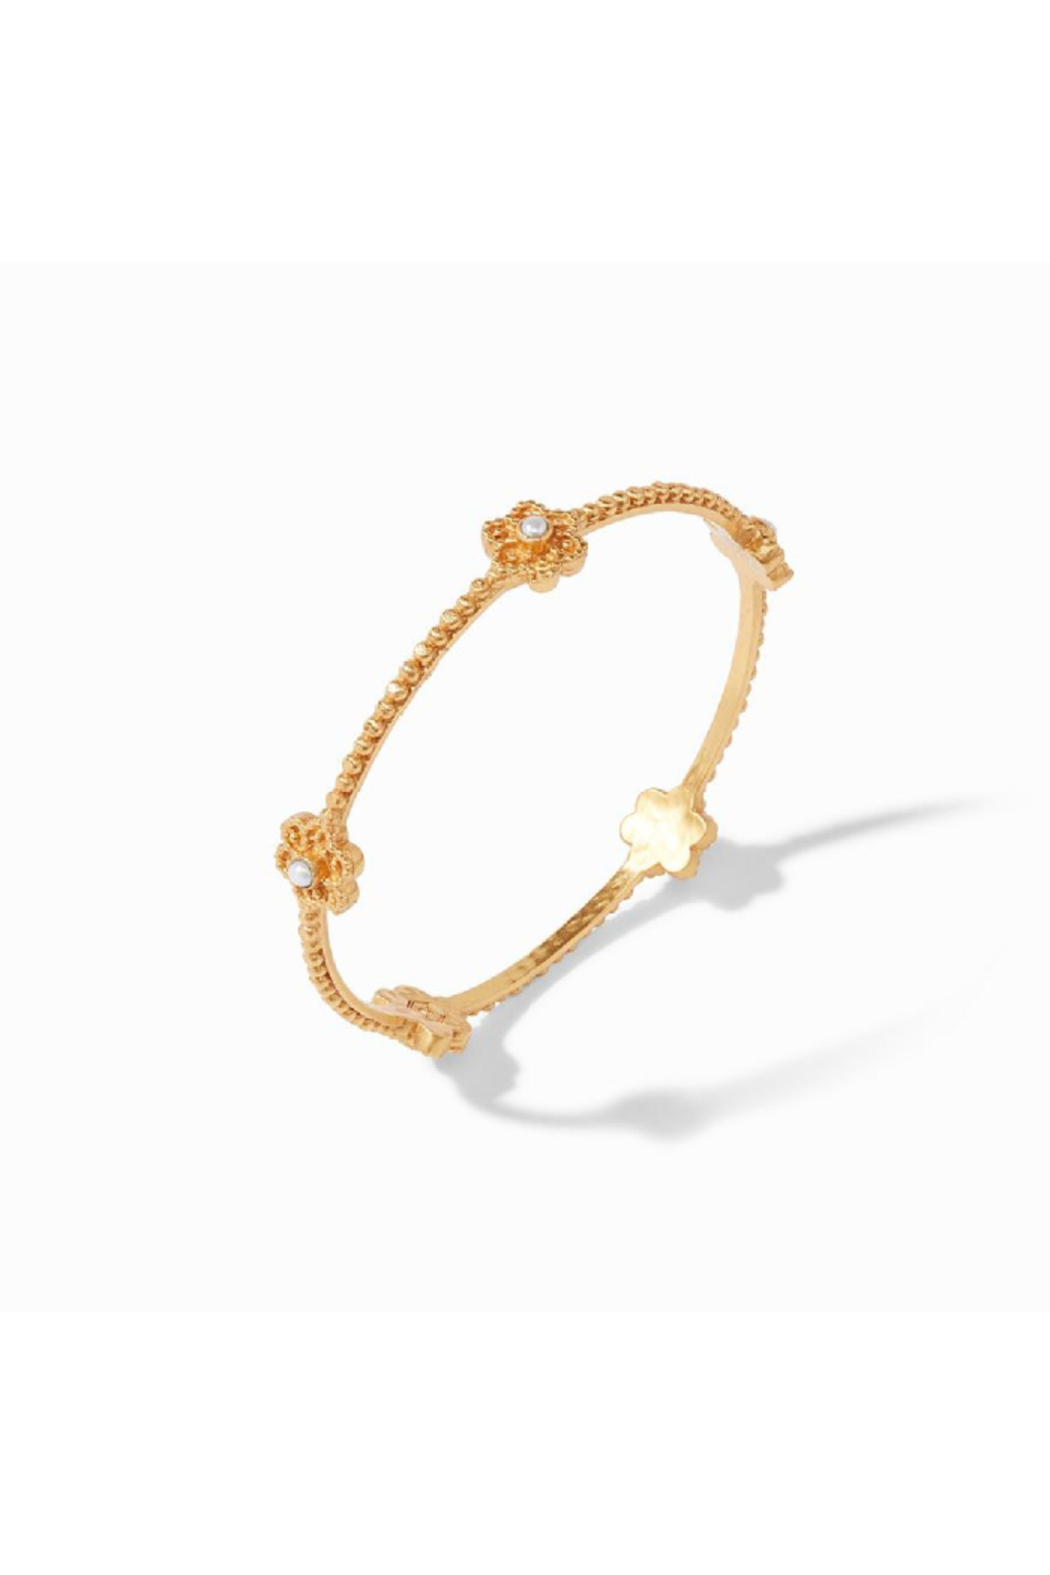 Julie Vos Colette Pearl Bangle Gold Pearl Small - Front Full Image